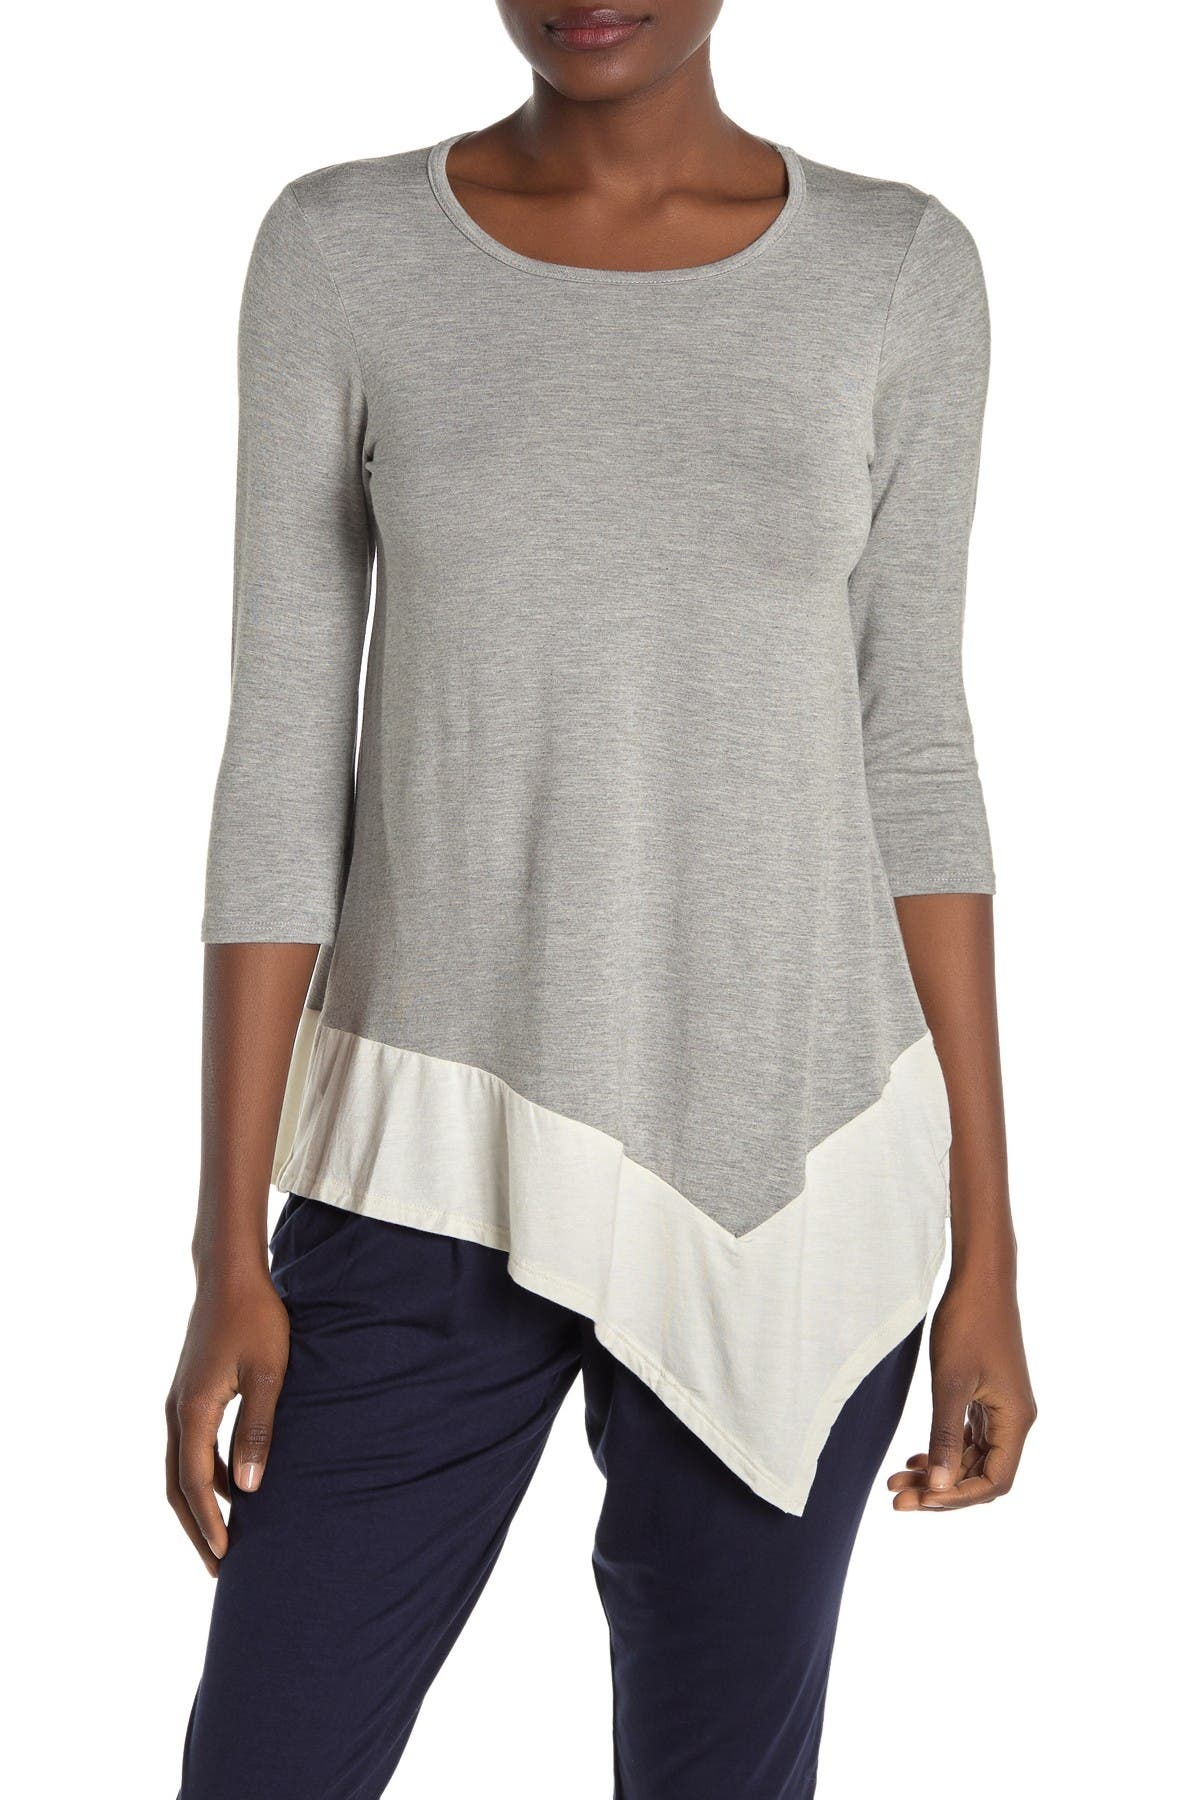 Image of Loveappella 3/4 Sleeve Asymmetrical Blouse